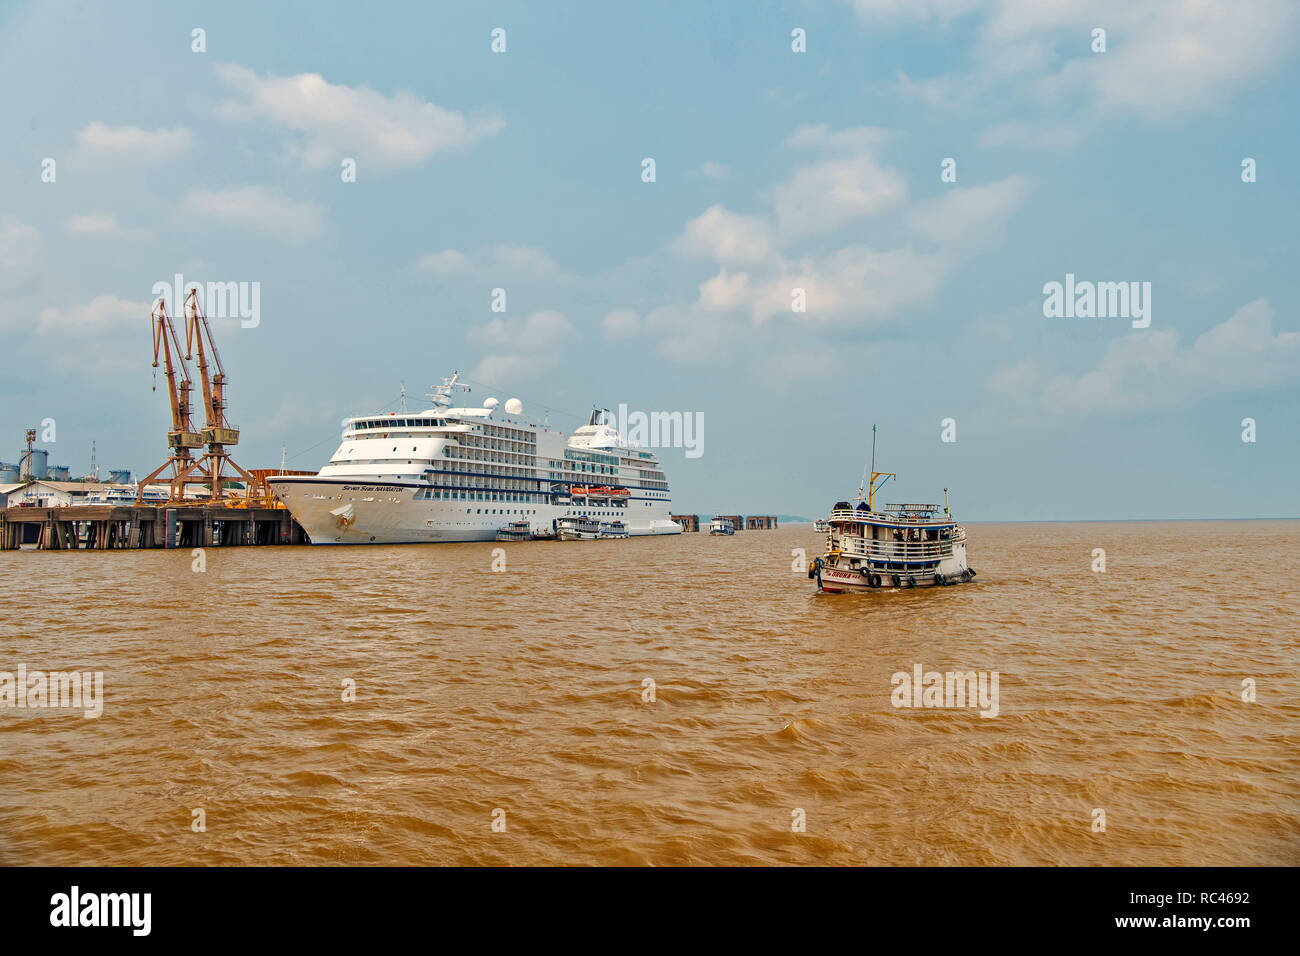 Santarem, Brazil - December 02, 2015: Seven Seas Navigator cruise liner in dock and small ship floating on sea on grey sky background. Luxury lifestyle concept. Tourist destination and travelling - Stock Image